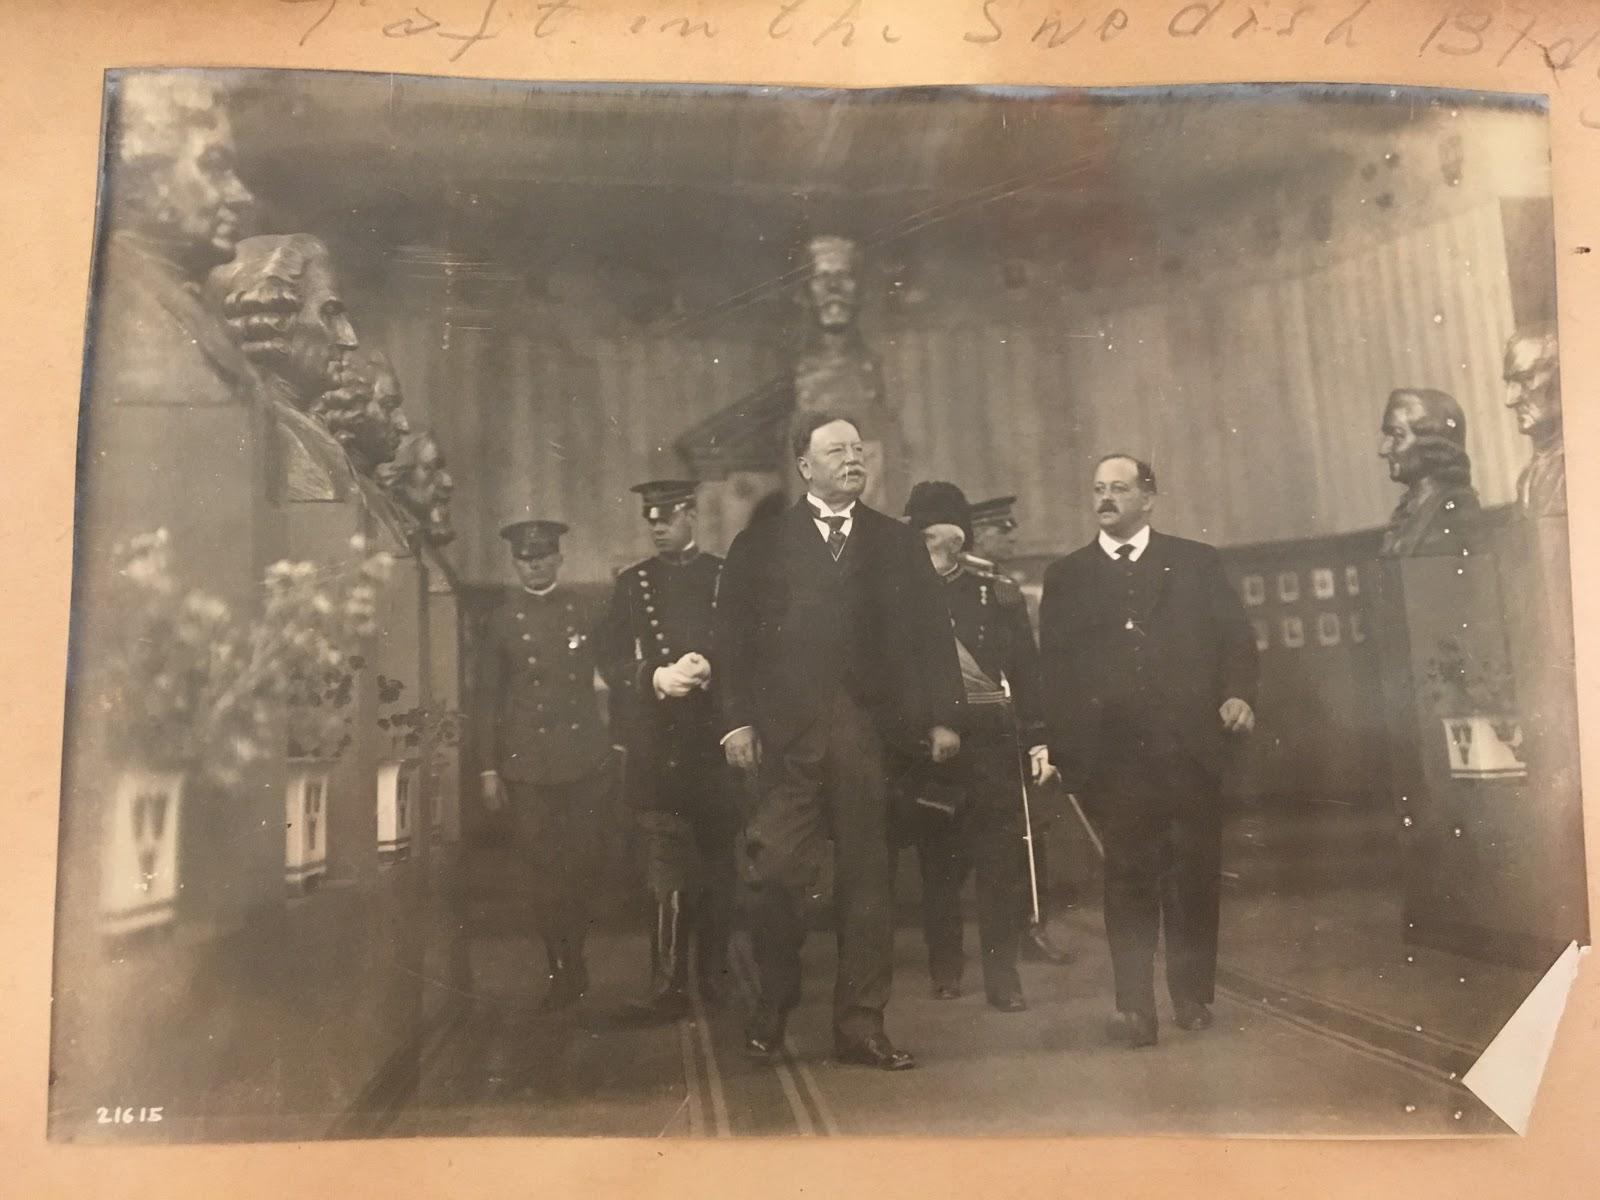 President Taft viewing busts in Swedish Building of the Panama Pacific International Exposition